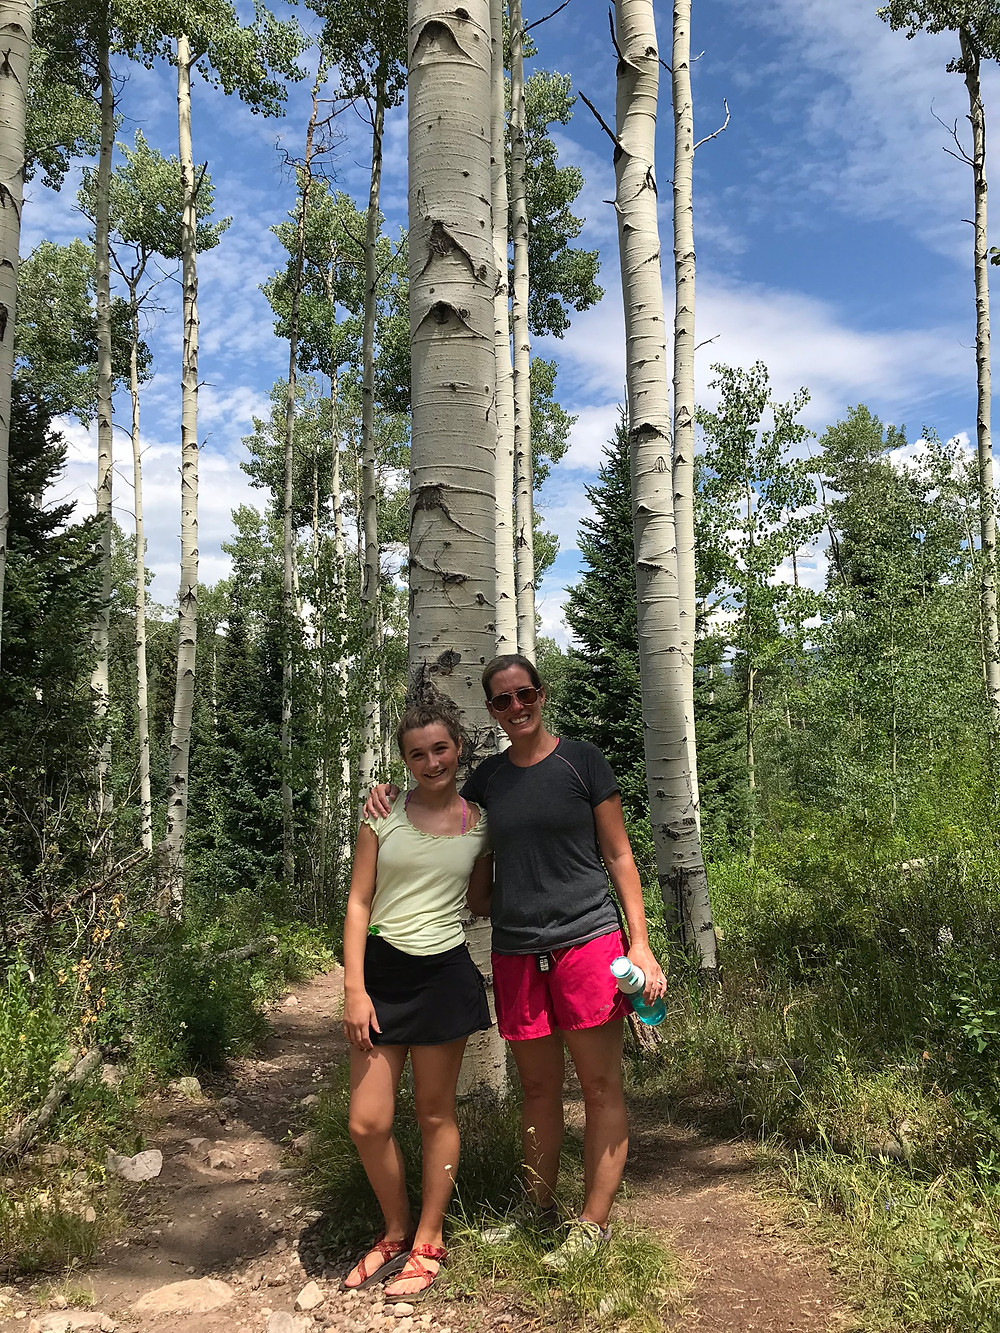 Hiking in an aspen grove in Vail, CO